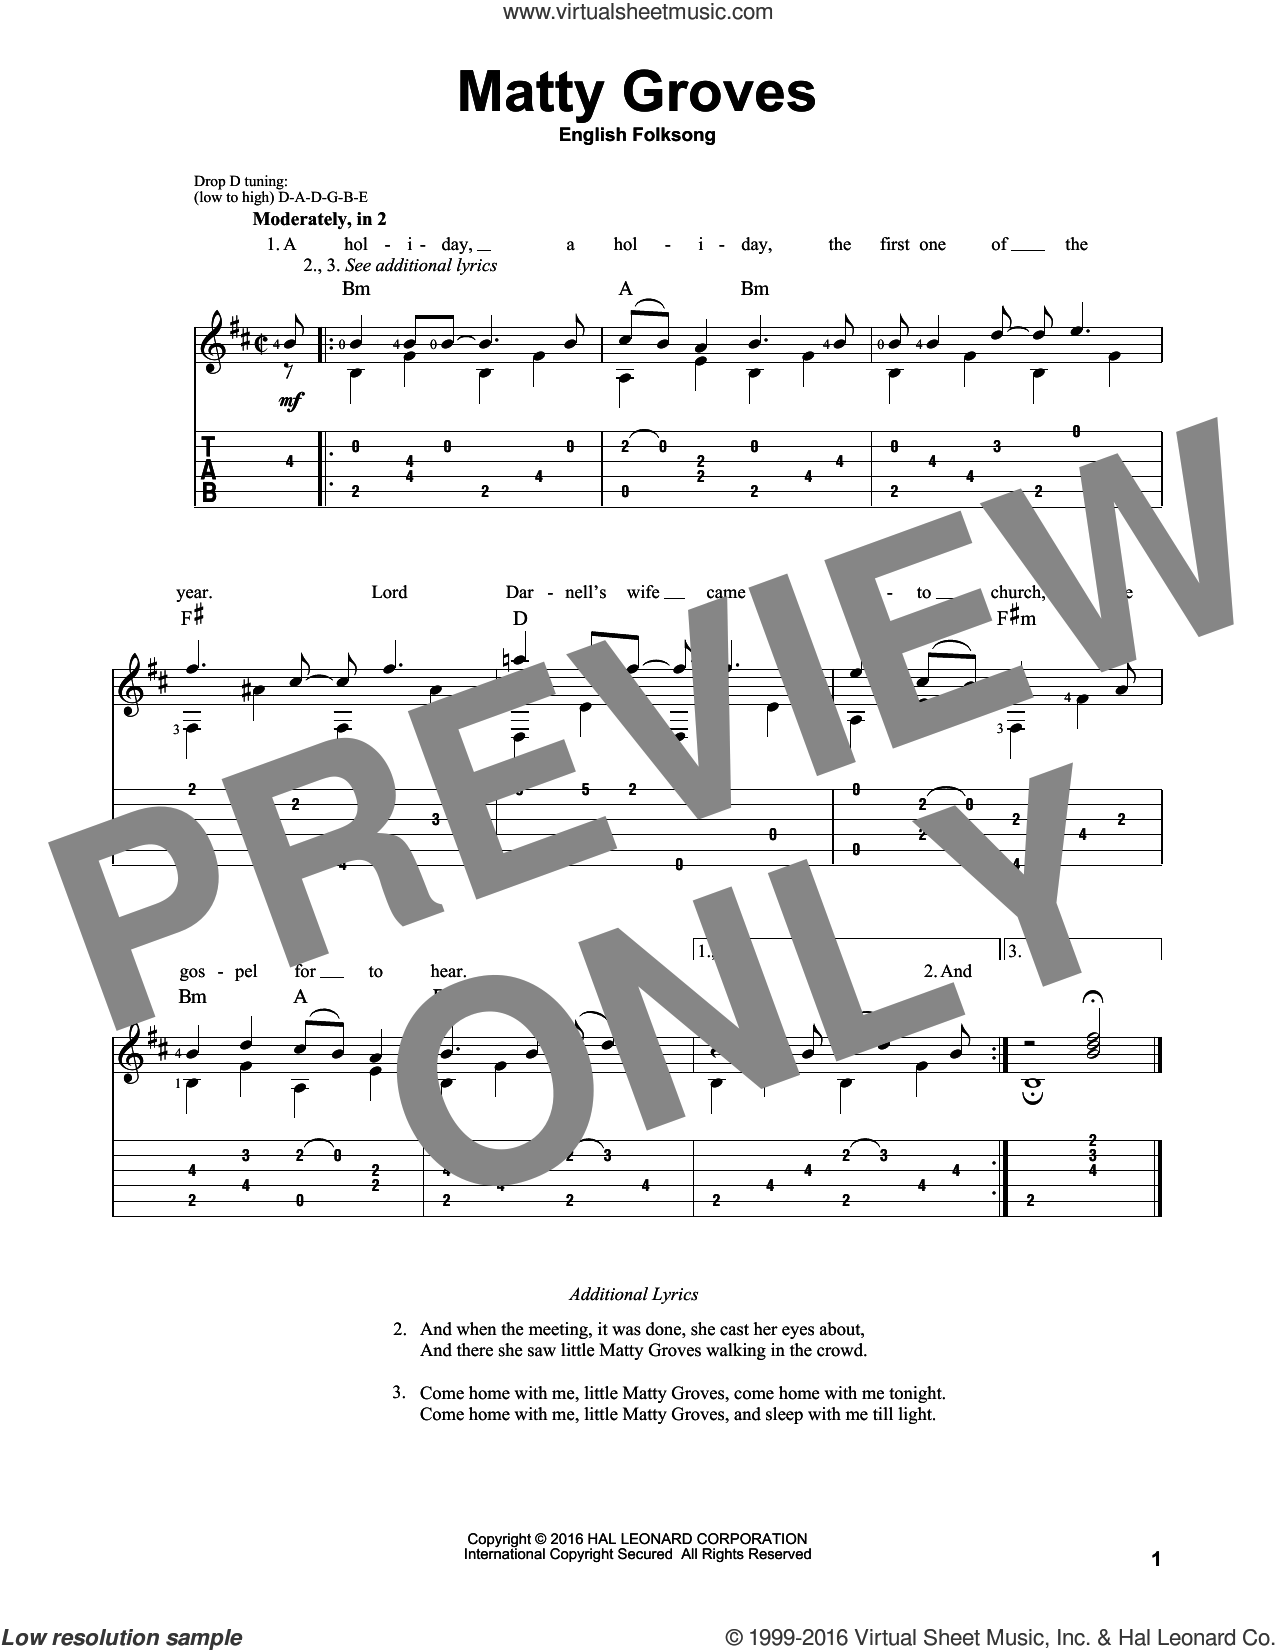 Matty Groves sheet music for guitar solo, intermediate guitar. Score Image Preview.